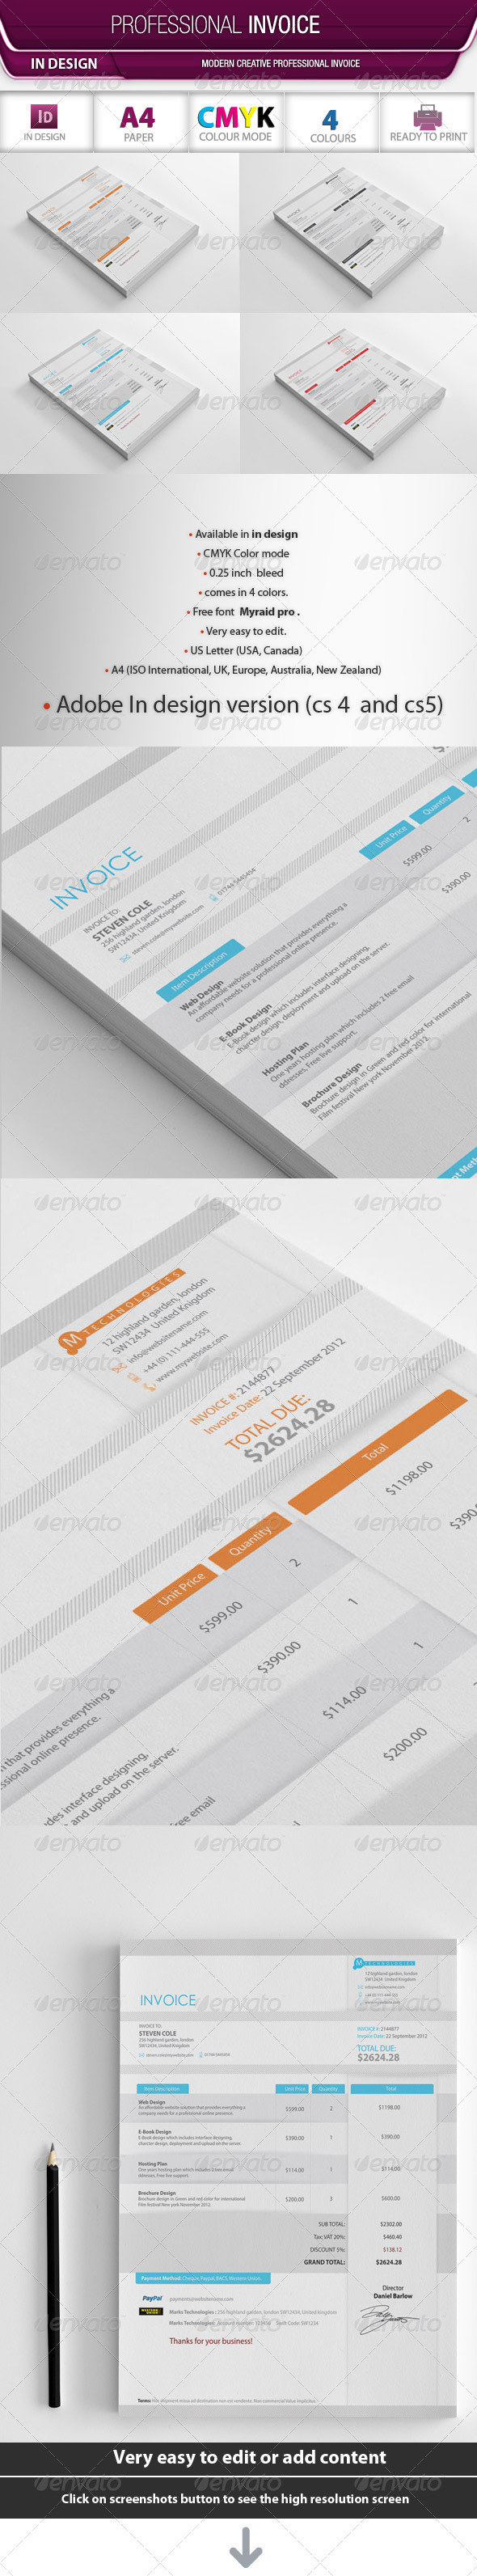 GraphicRiver Professional Invoice 3317331